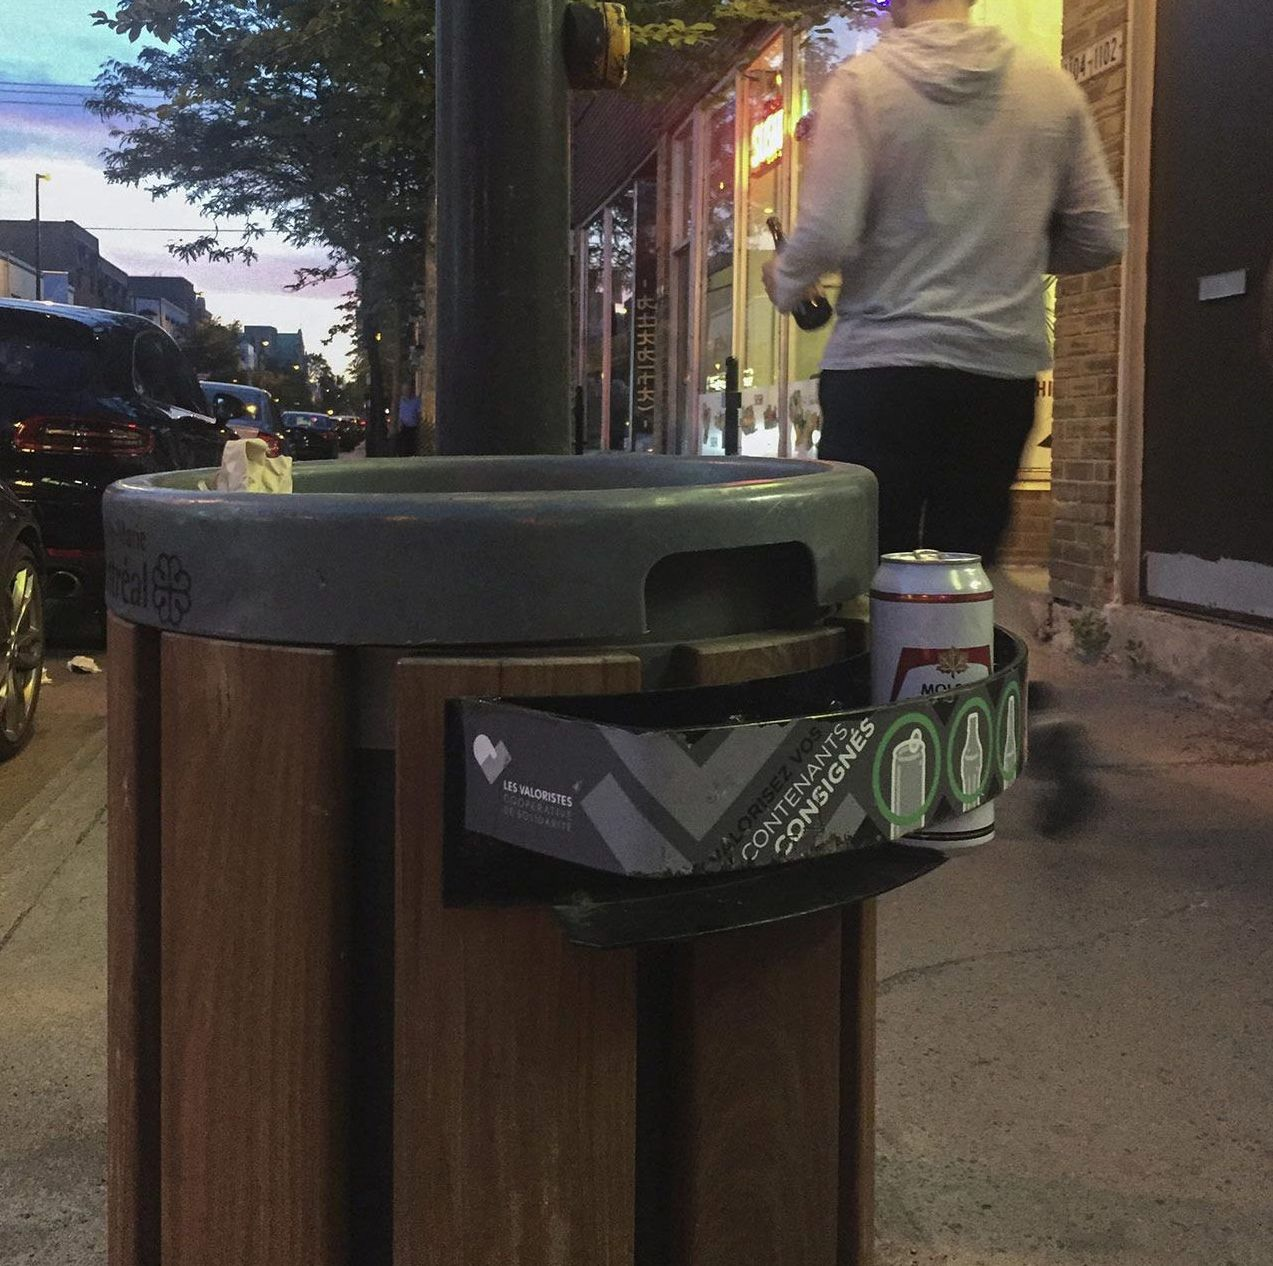 Participatory waste bin in Montreal. Credit: Coop Les Valoristes